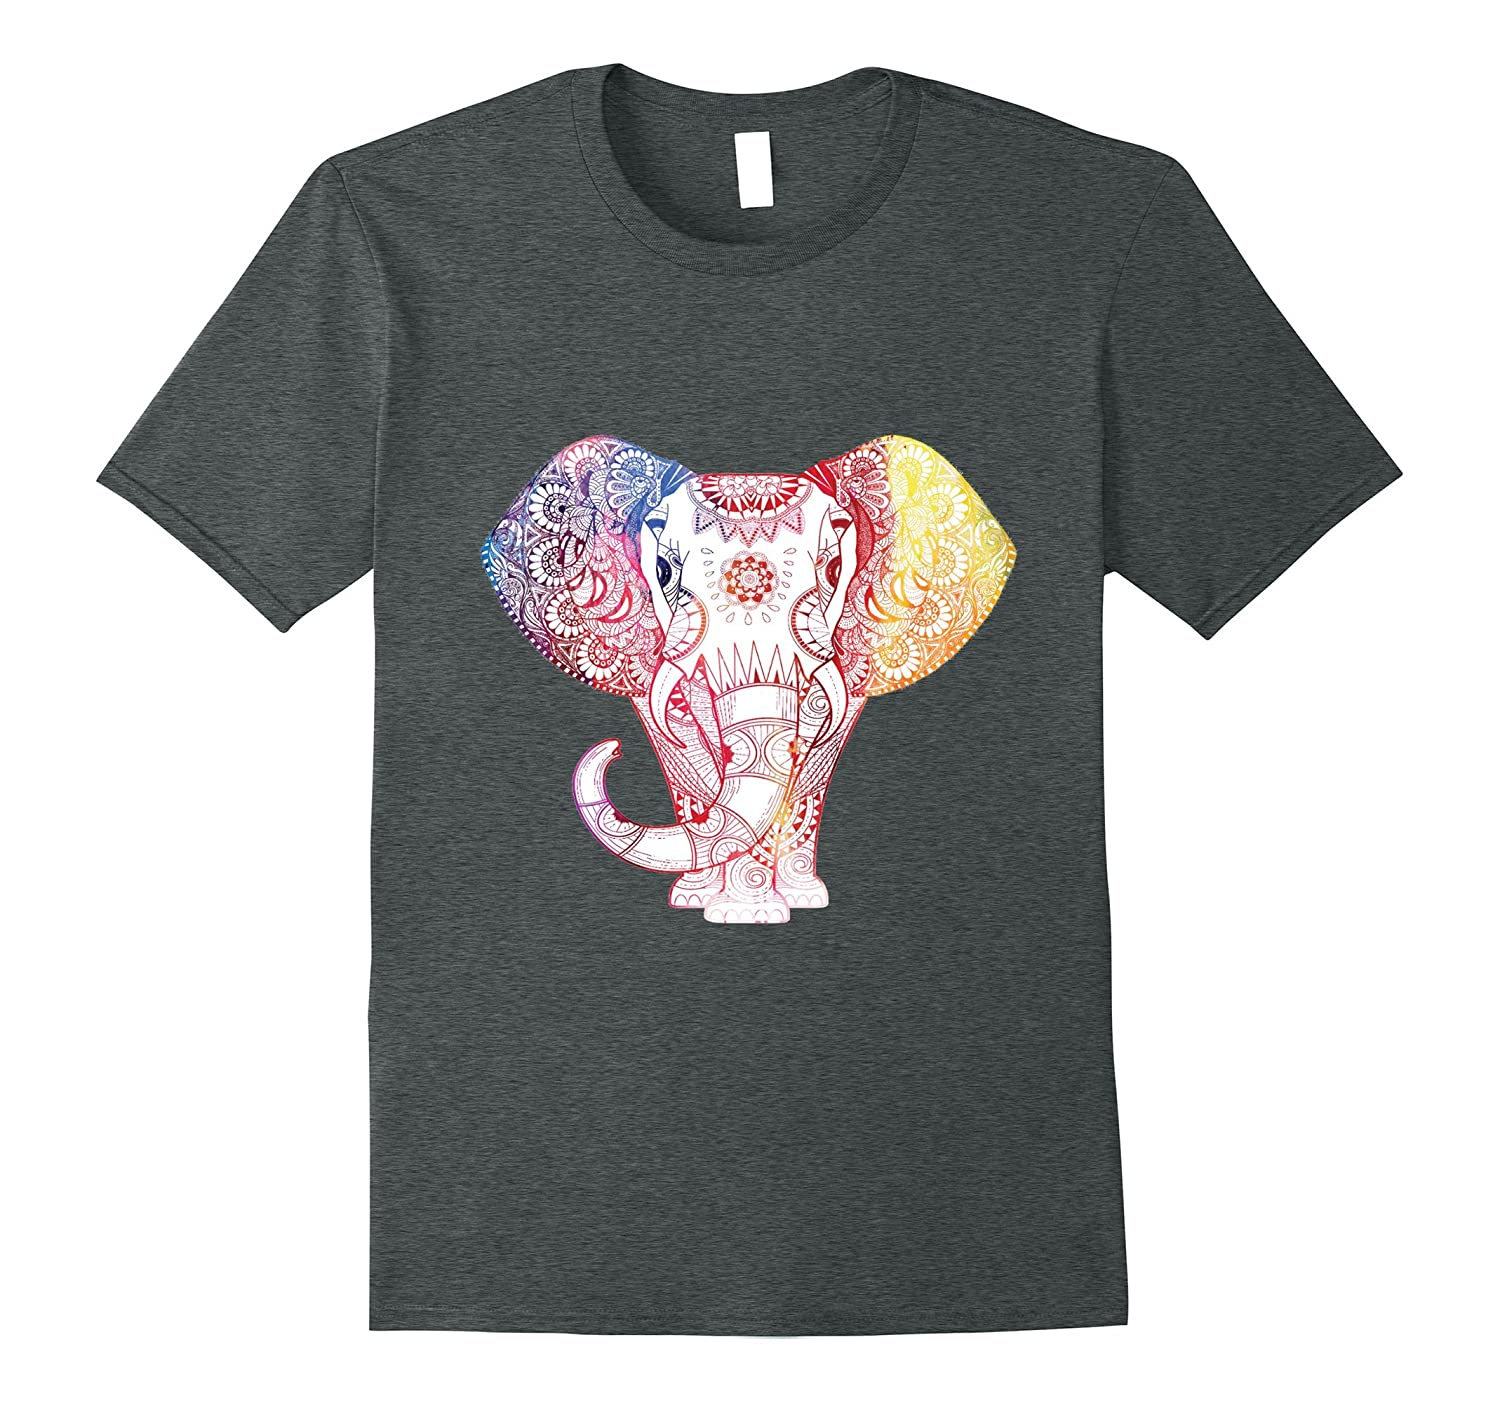 Beautiful elephant art tee perfect for yoga or relaxing-BN